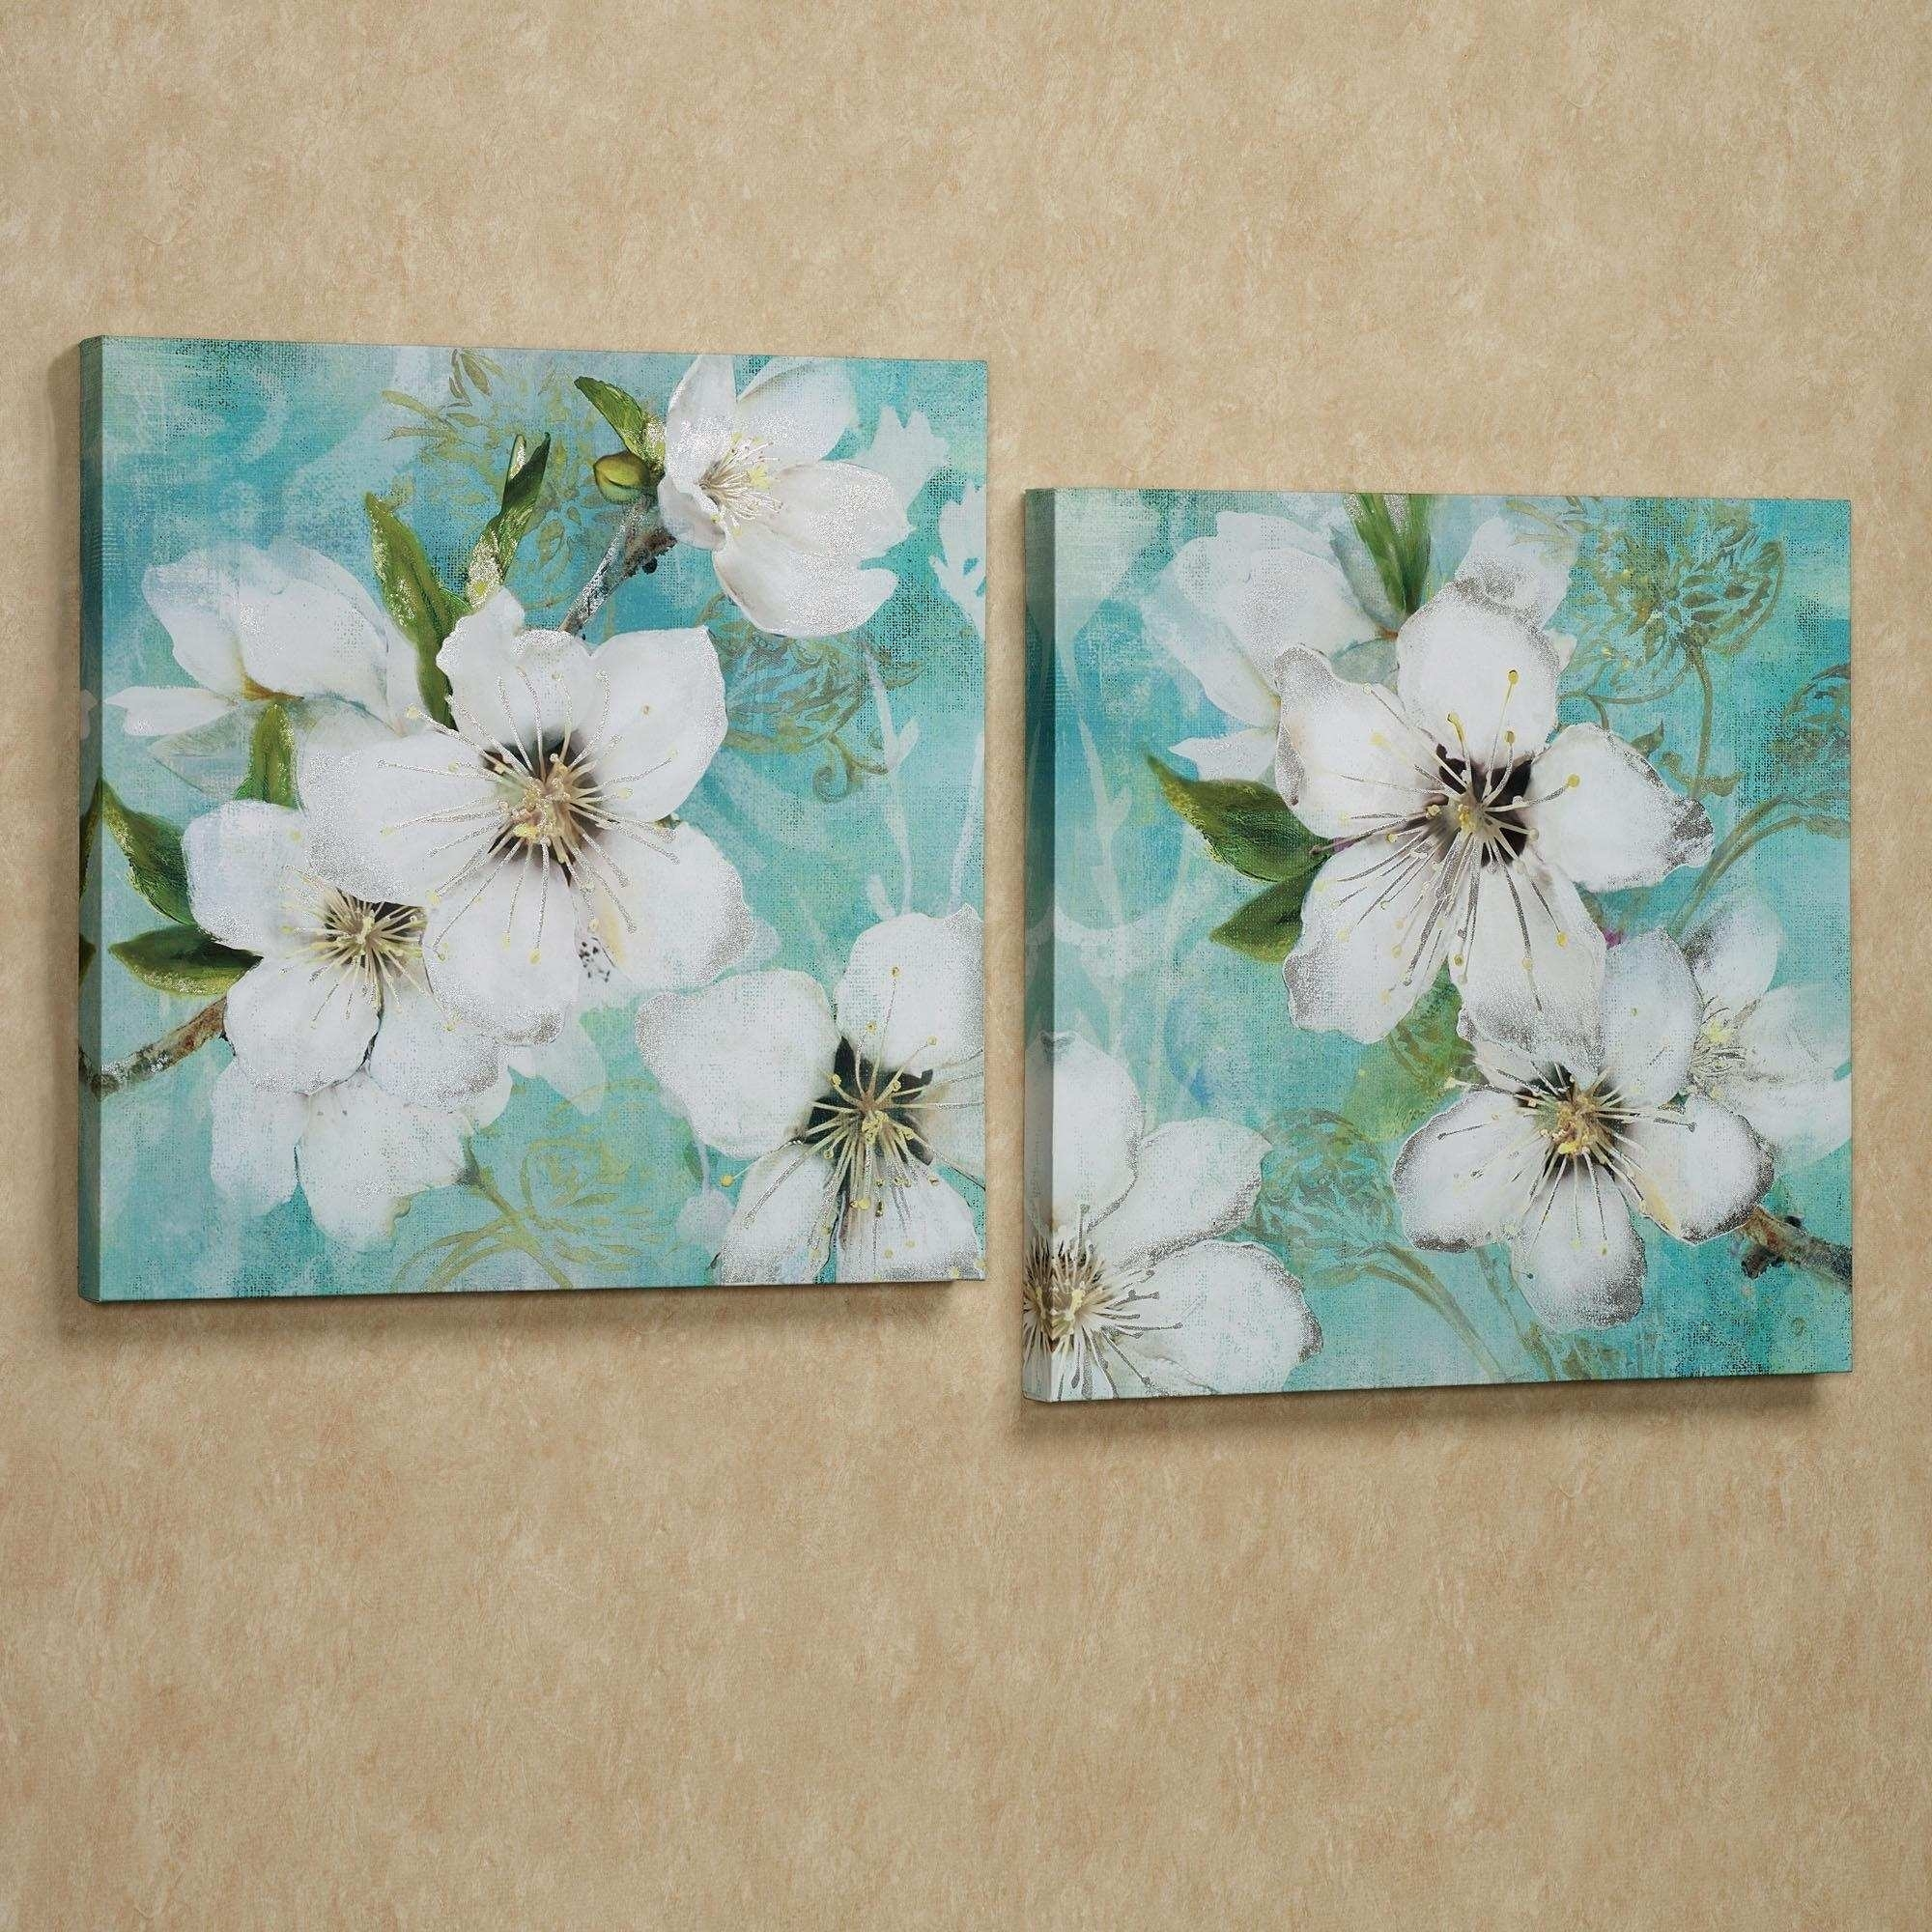 Floral Canvas Wall Art Fresh 20 Ideas Of Floral Wall Art Canvas throughout Most Up-to-Date Floral Canvas Wall Art